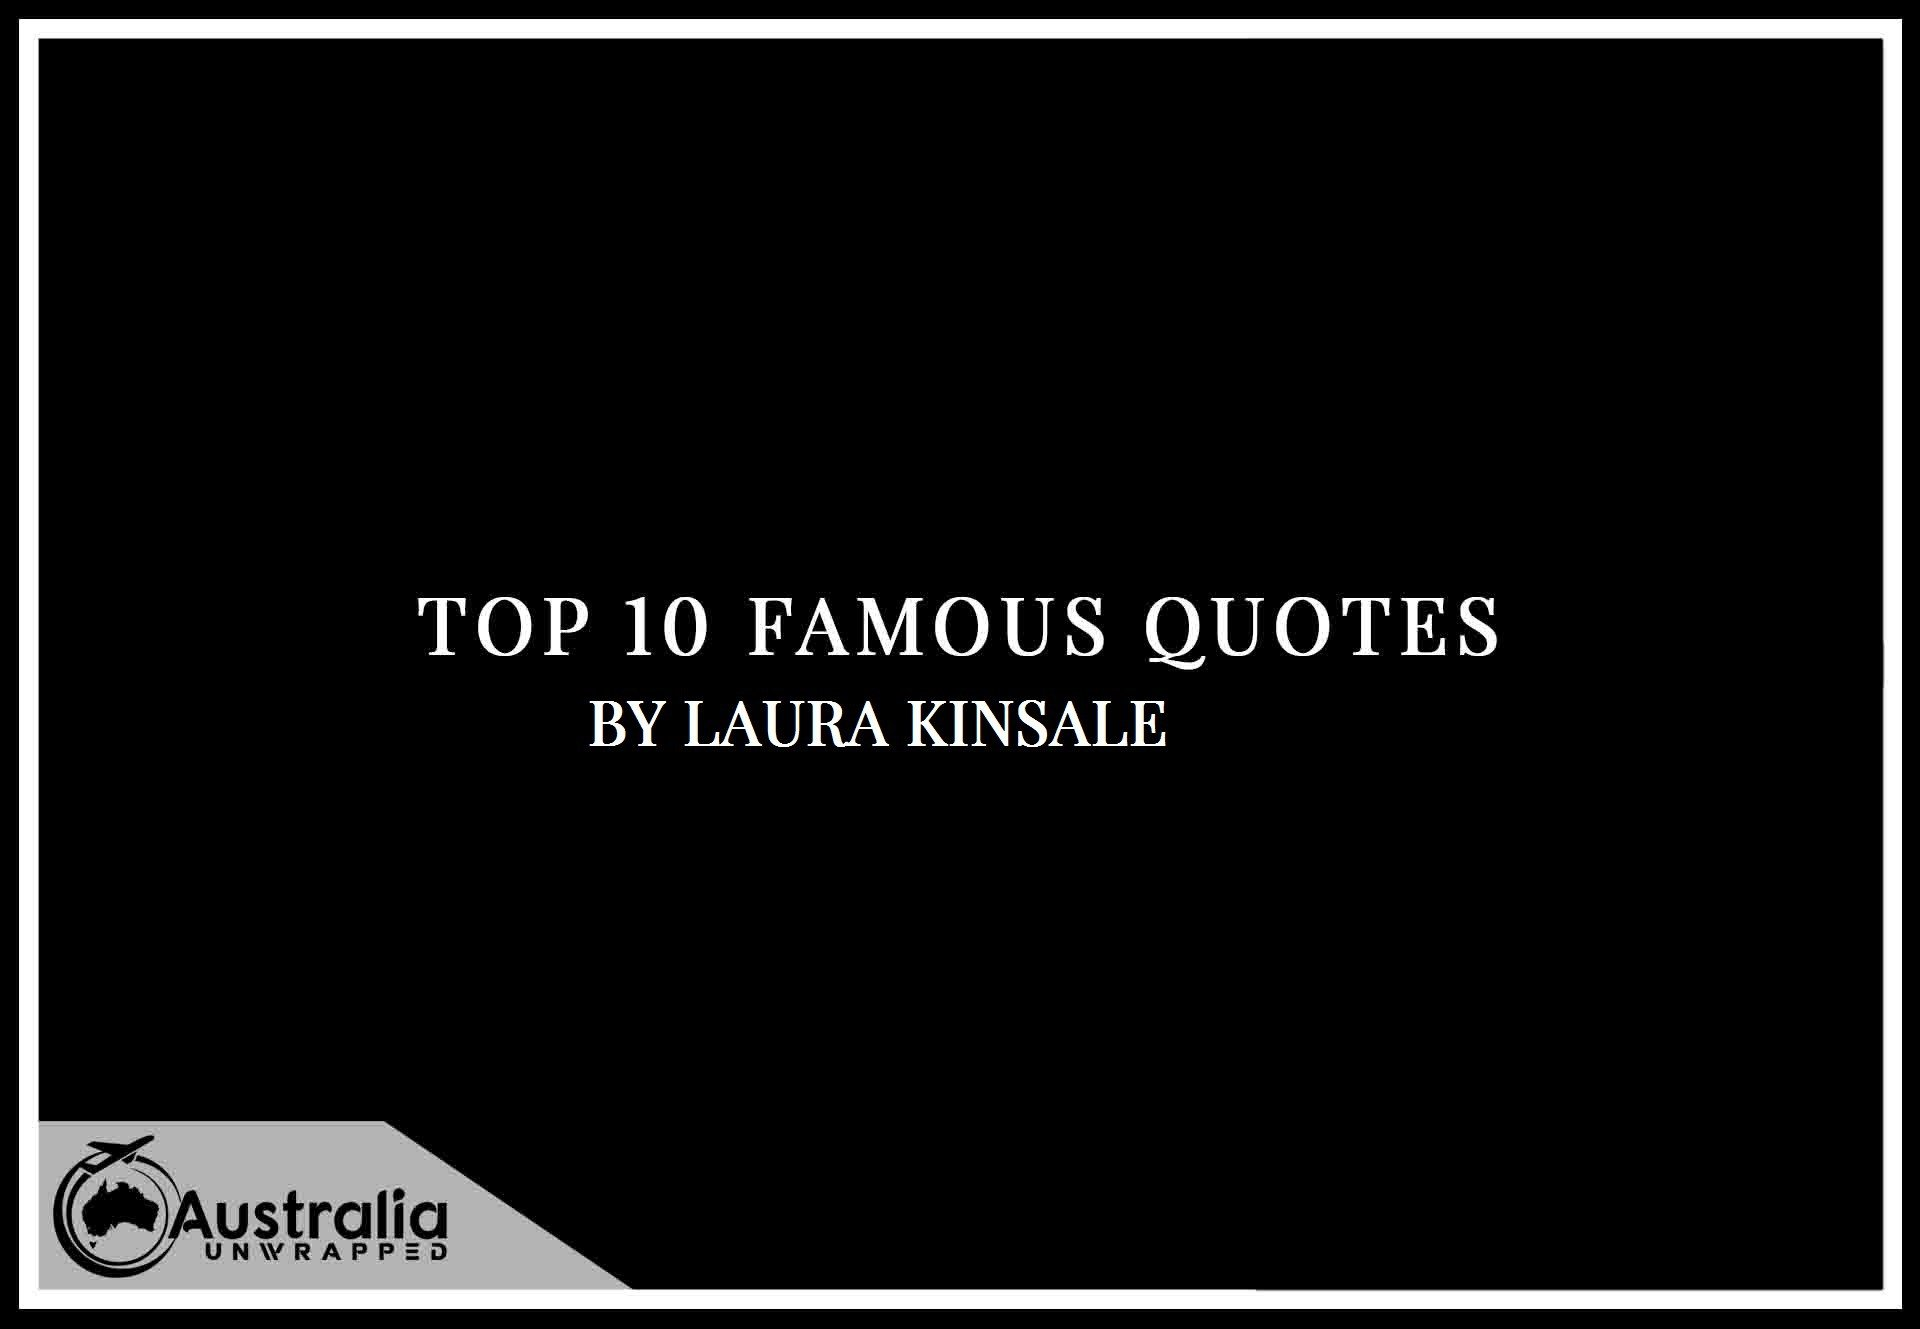 Laura Kinsale's Top 10 Popular and Famous Quotes